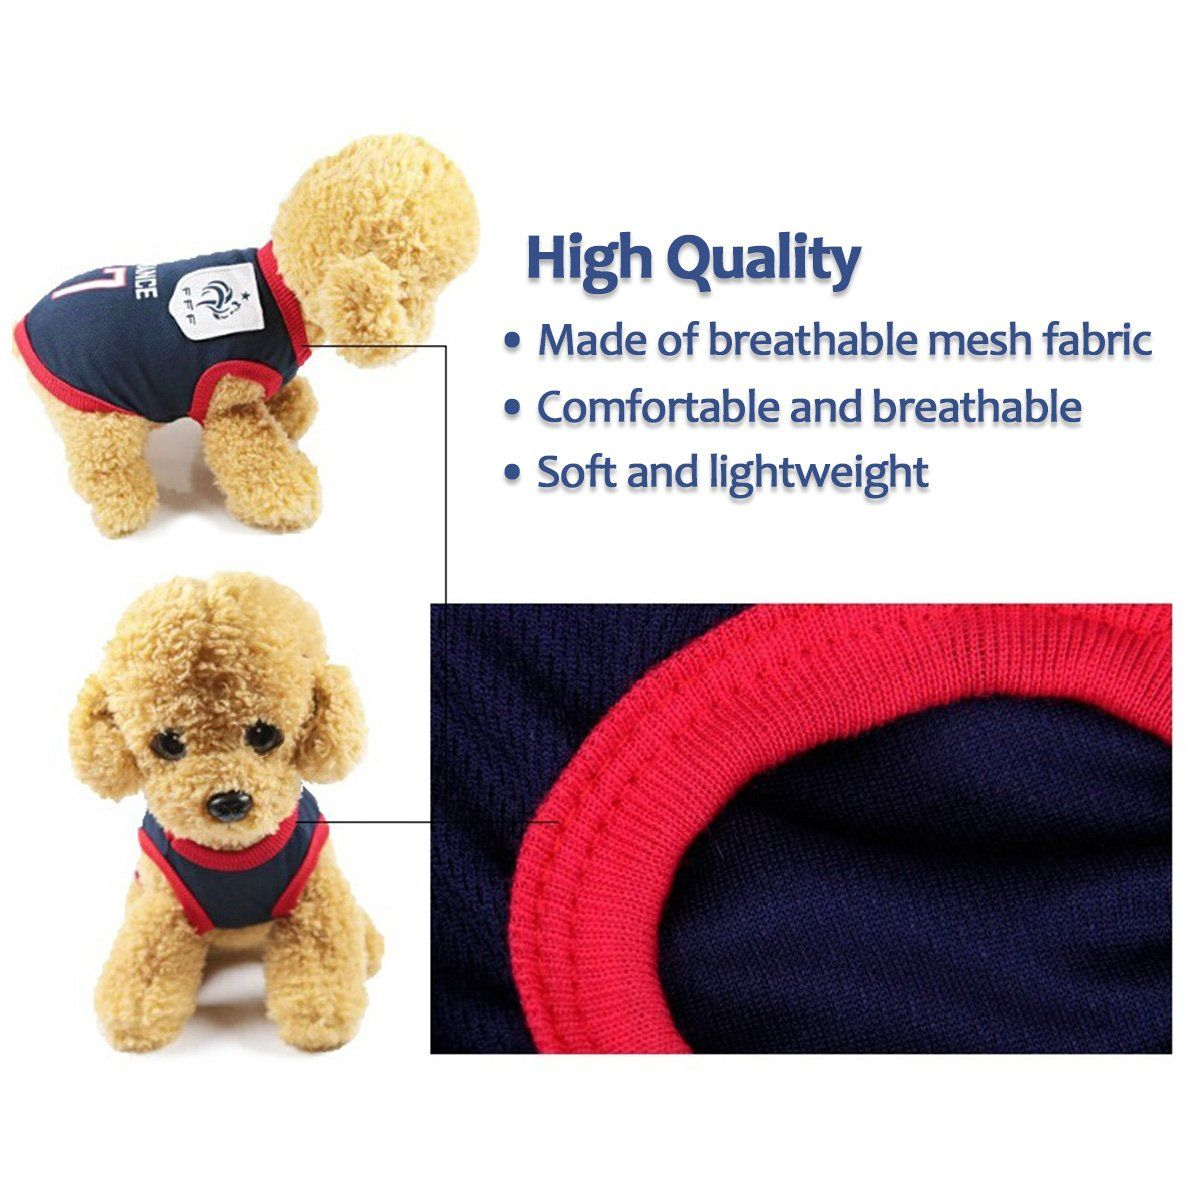 8e834da35 Antart Dog Clothes Football Tshirt Dogs Costume National Soccer World Cup  FIFA Jersey for Pet France   Information can be found by clicking the photo.